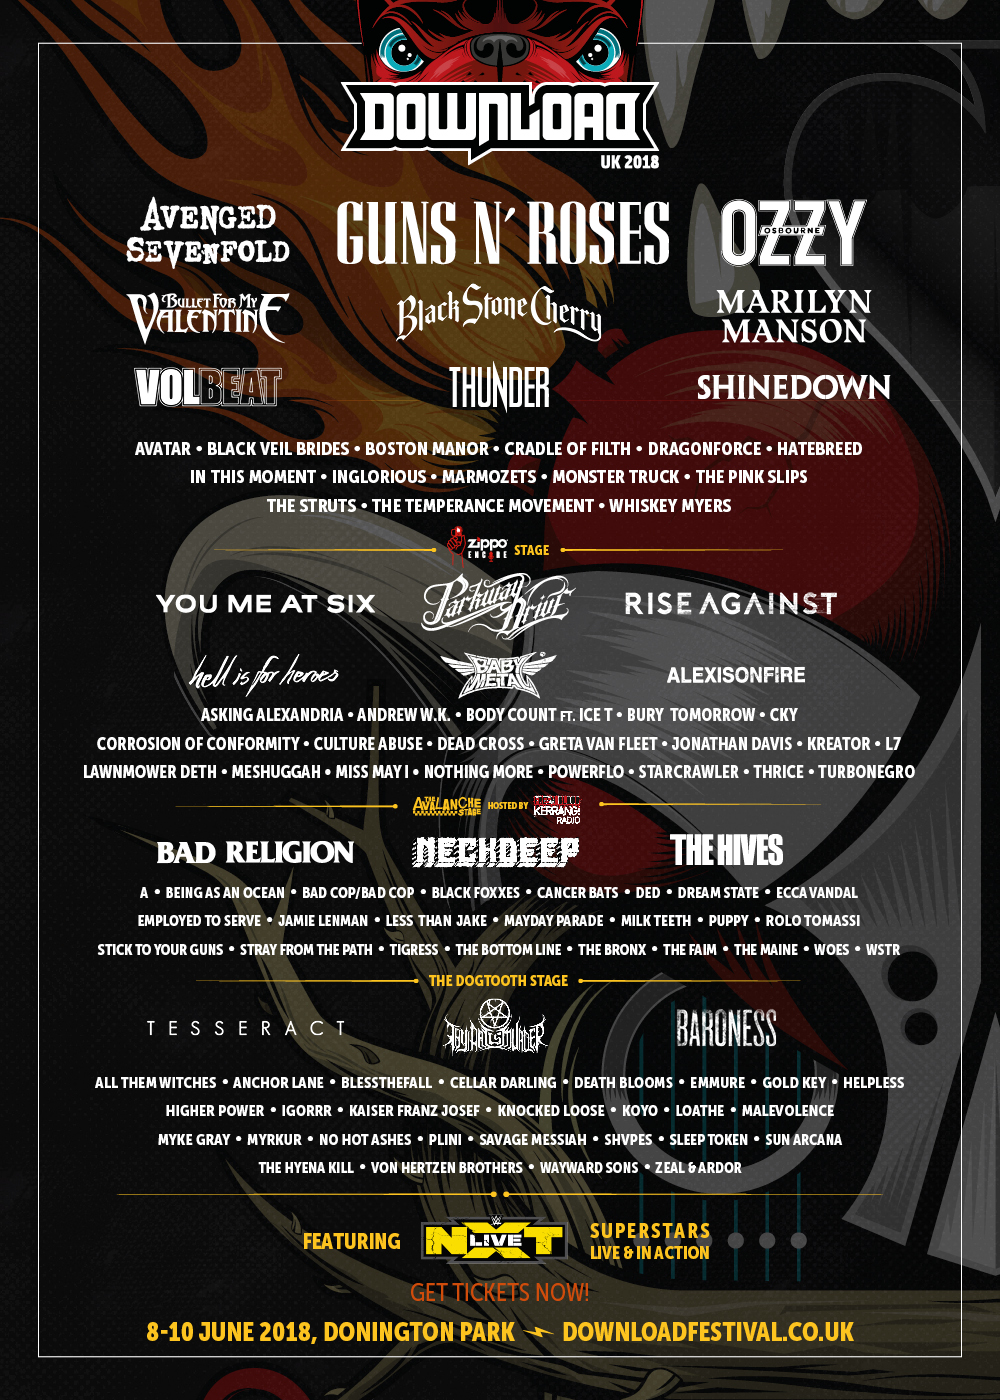 Download Festival 2018 Line Up